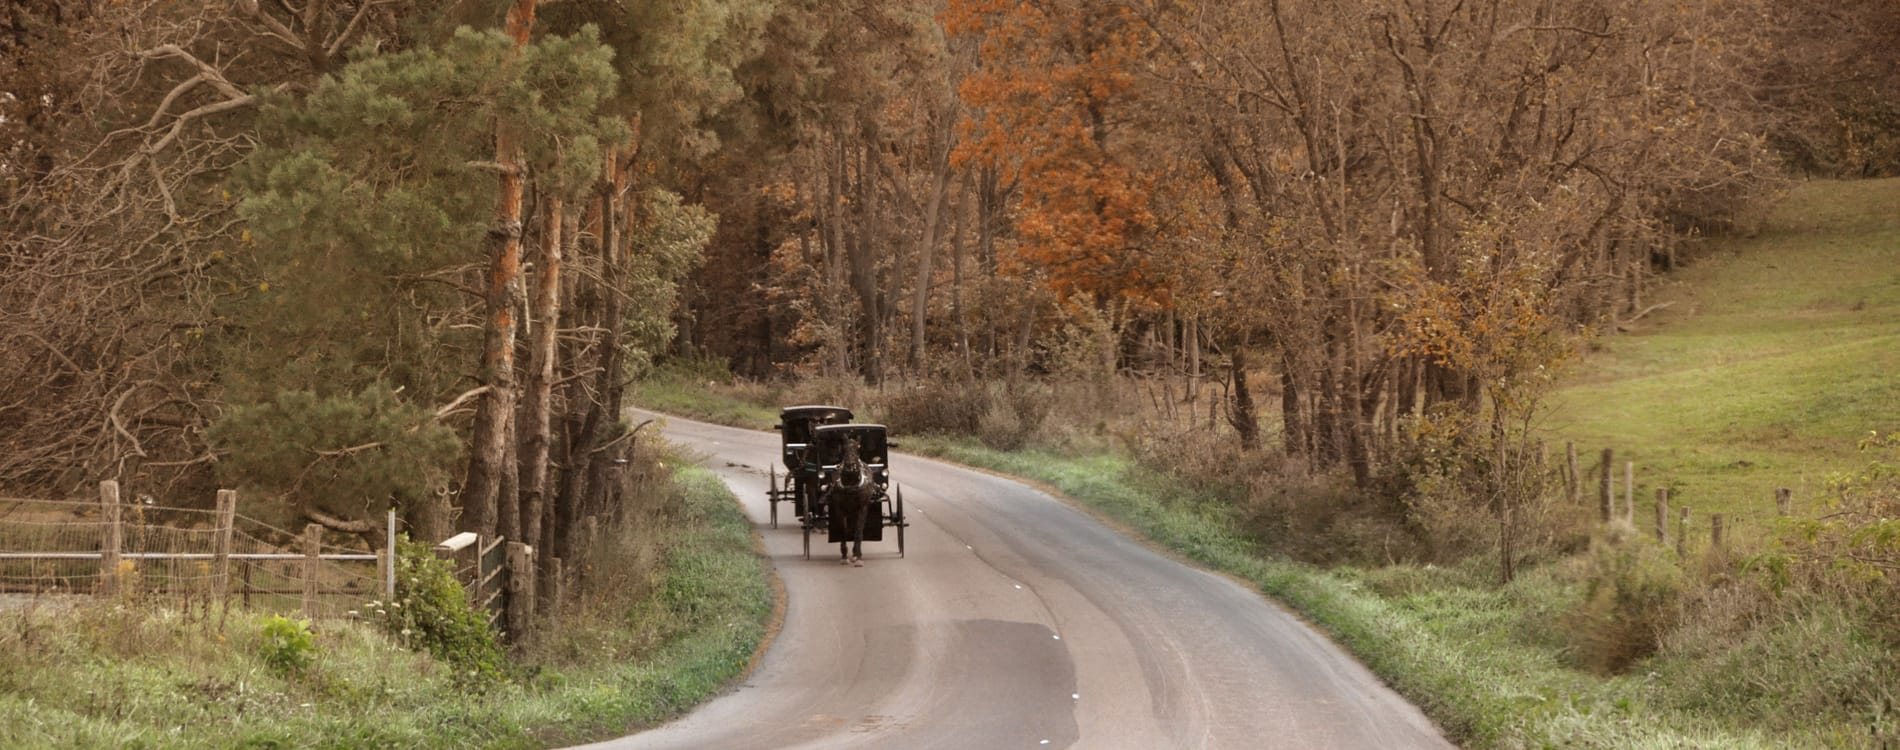 Amish Country, OH - Amish Buggy